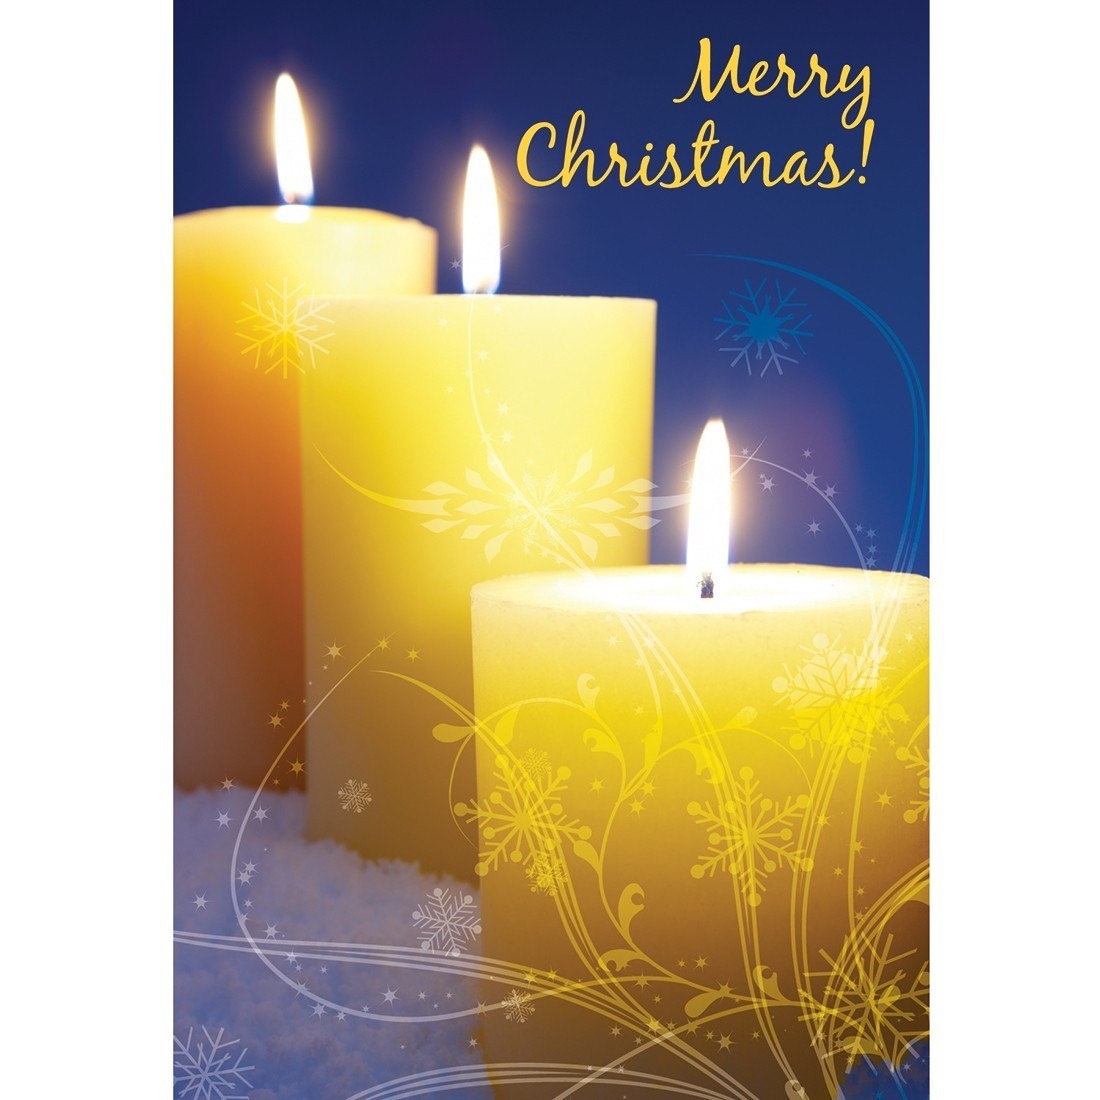 Merry Christmas Candles Greeting Cards [image]